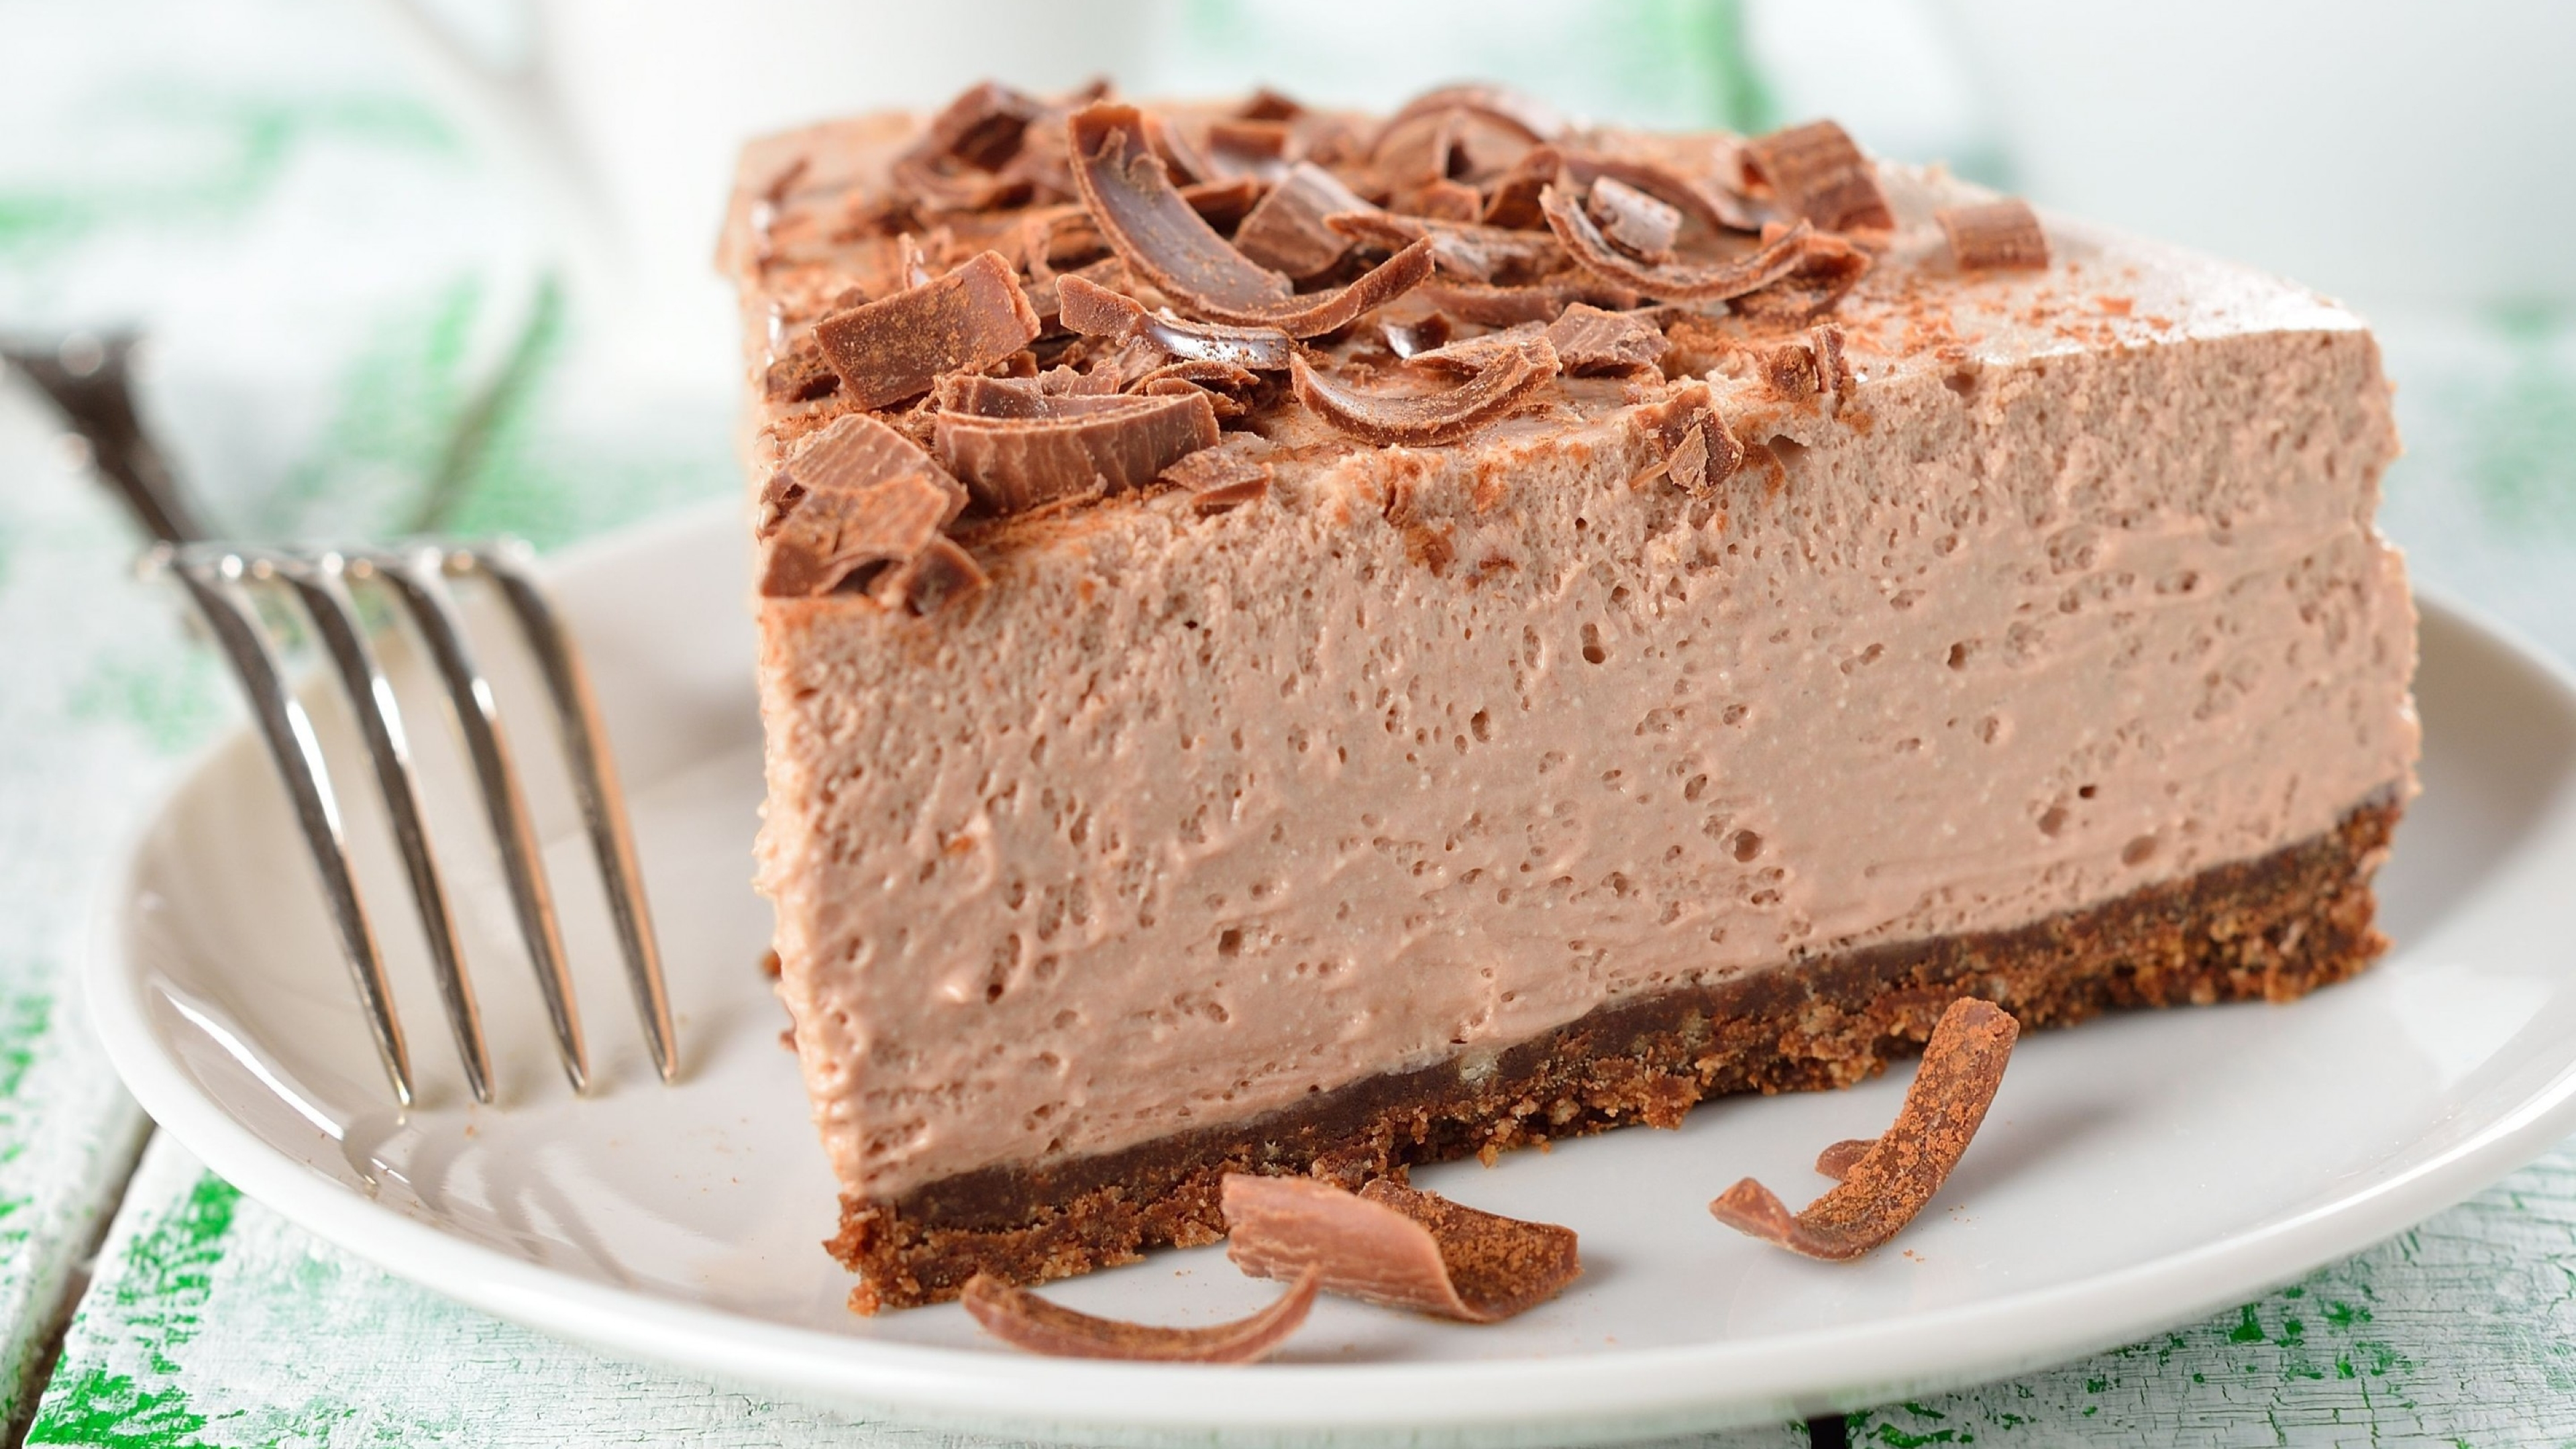 Wallpaper Mousse cake with chocolate chips on a plate